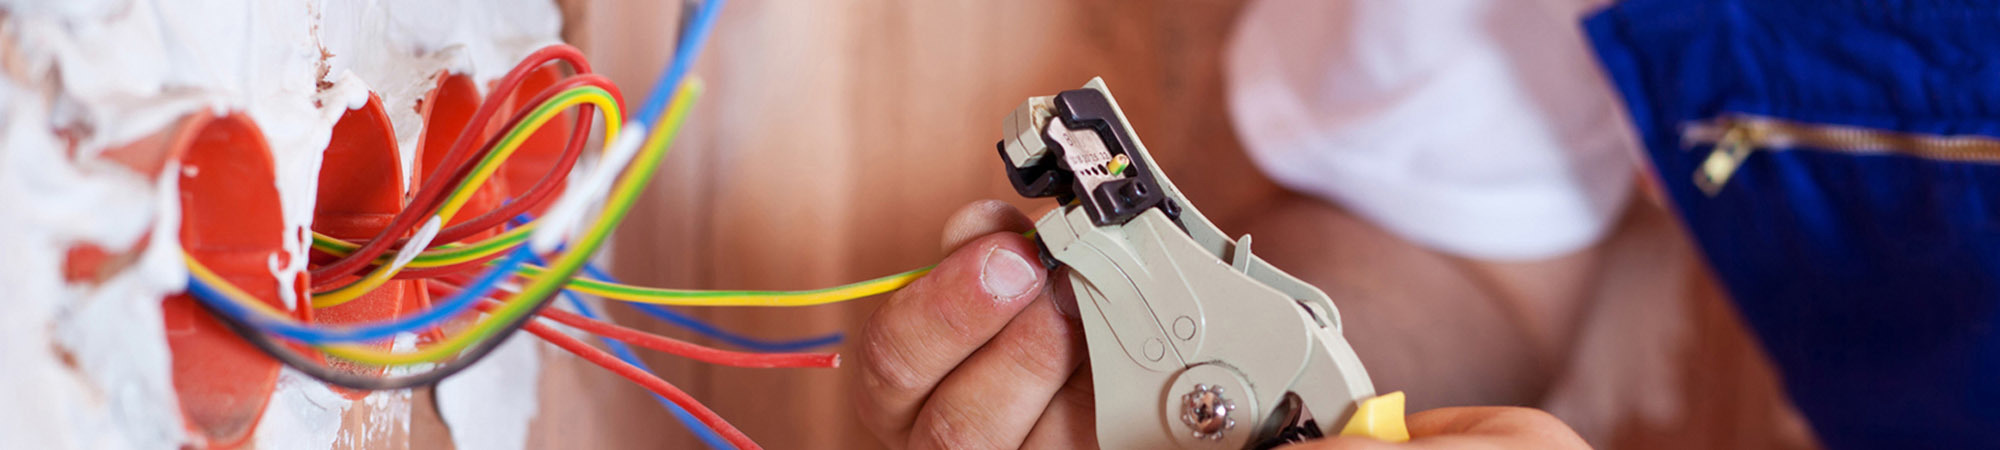 From New Home Wiring to Hot Water Repairs, Can Do Electrical has you covered